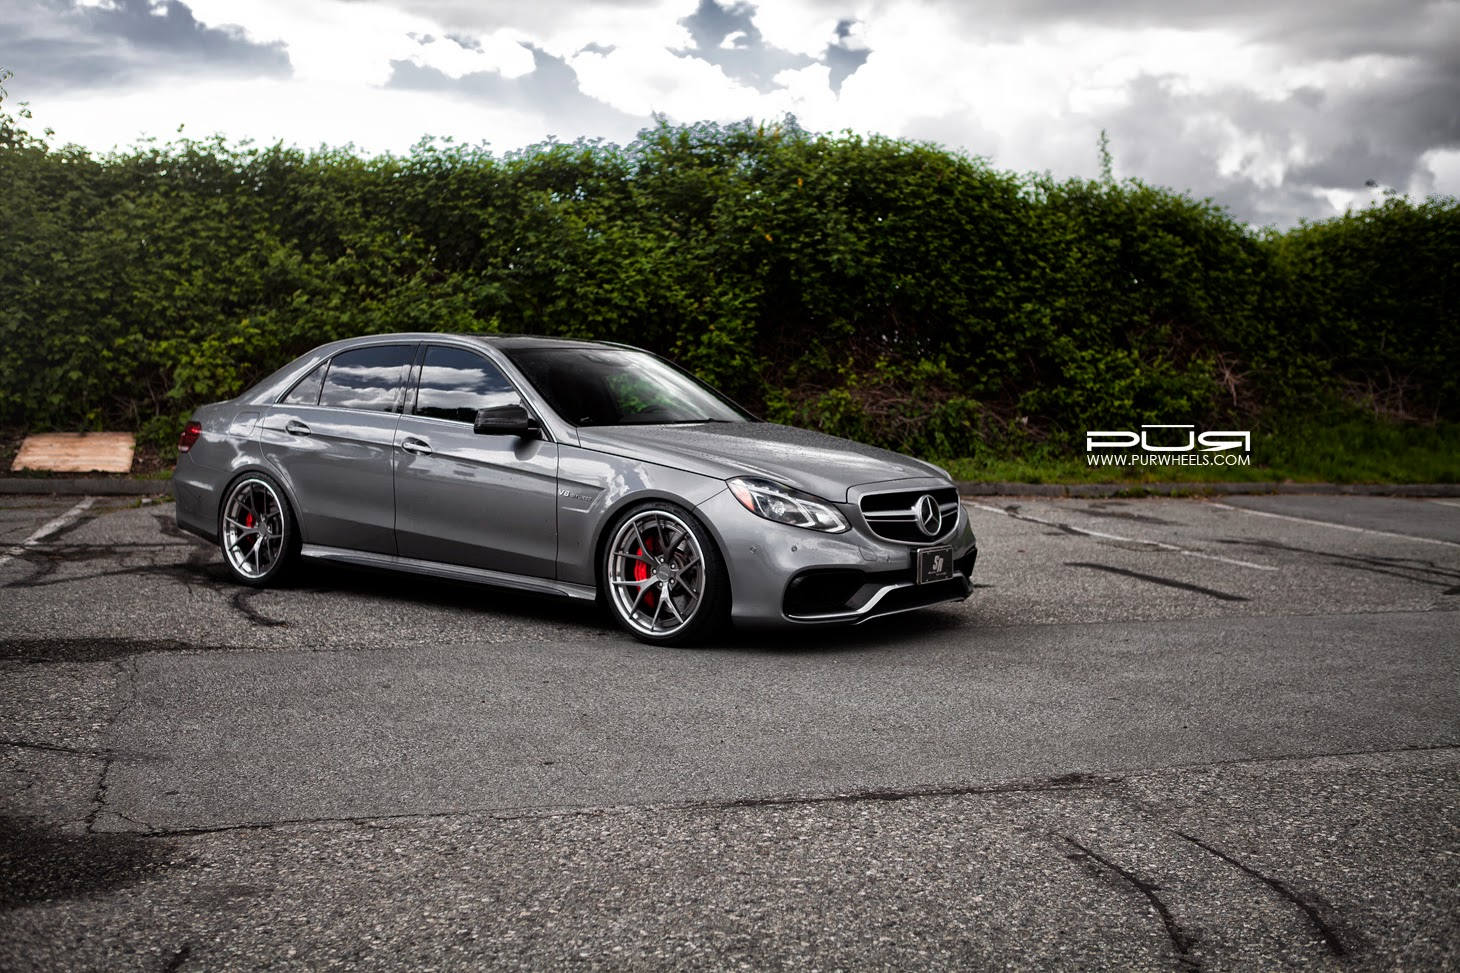 Mercedes benz w212 e63 amg facelift on pur wheels benztuning for Amg wheels for mercedes benz